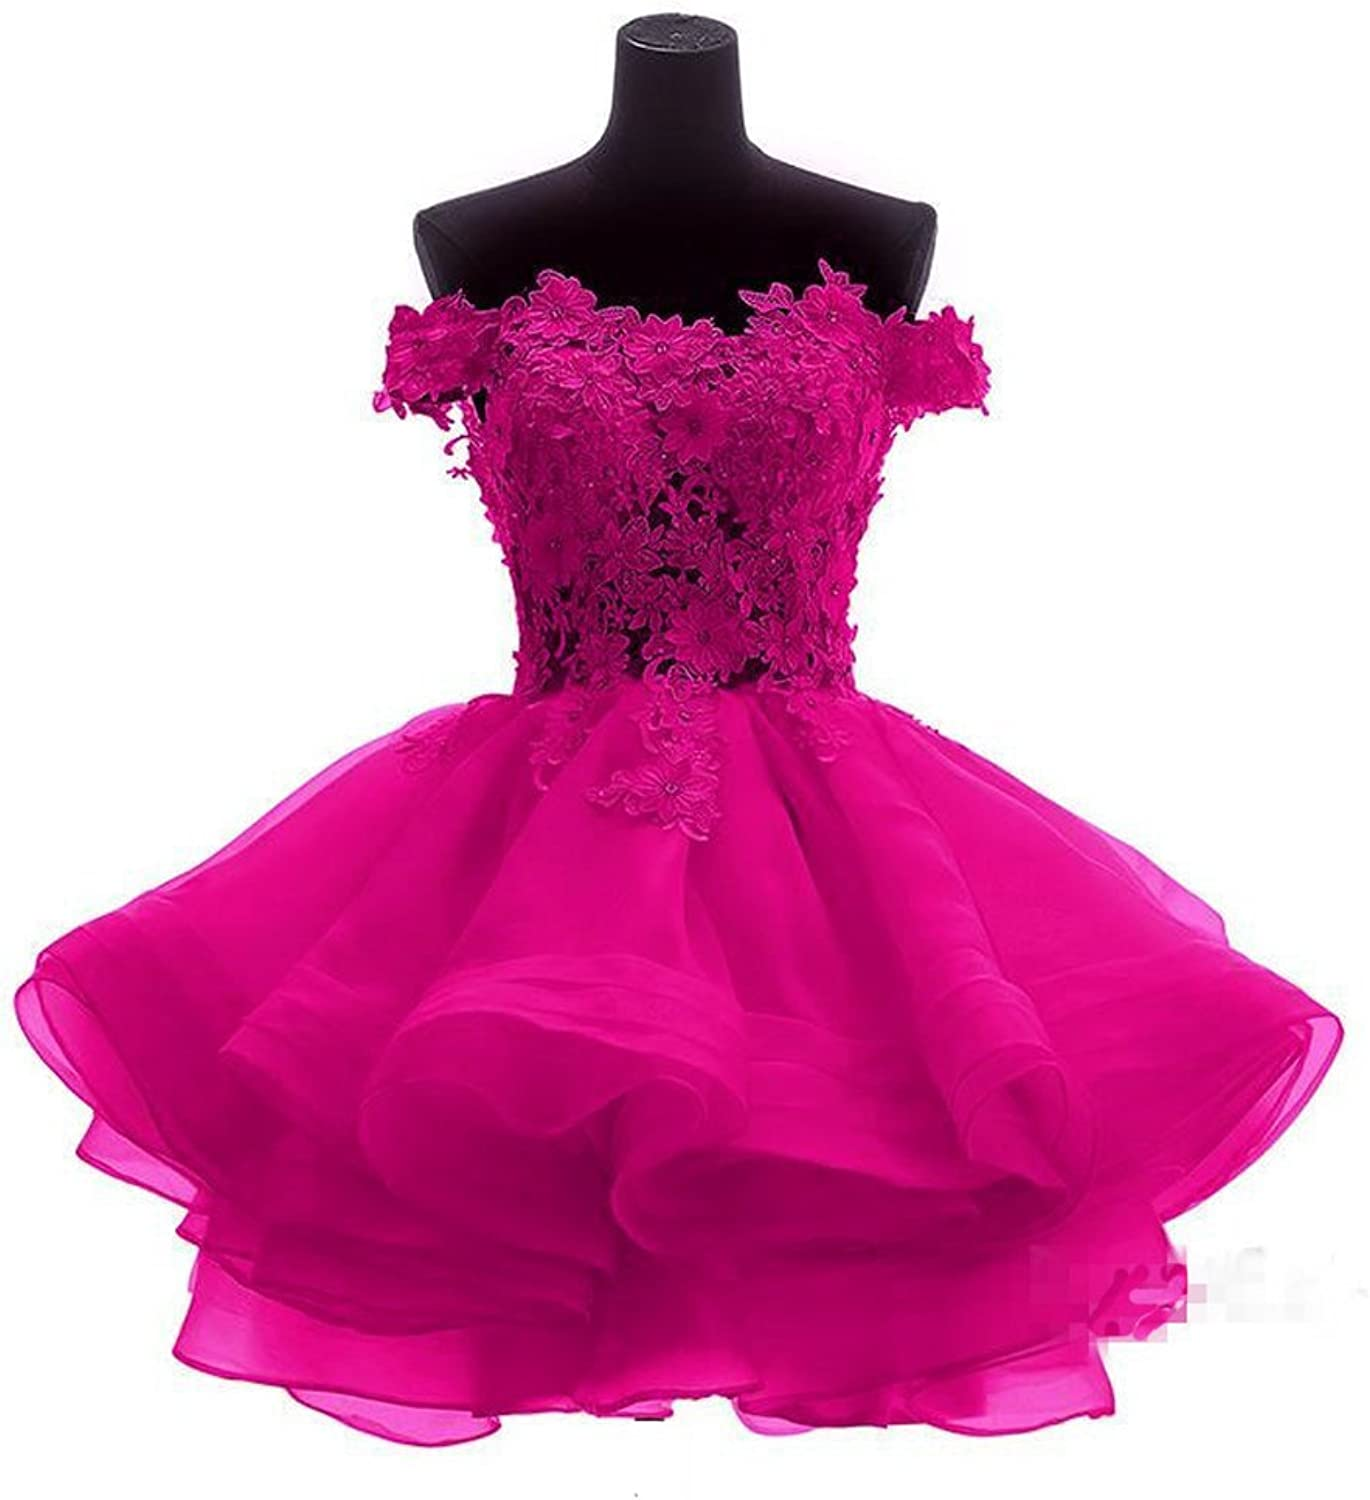 Liaoye Women's Off Shoulder Homecoming Dress Lace Tiered Homeocming Dress